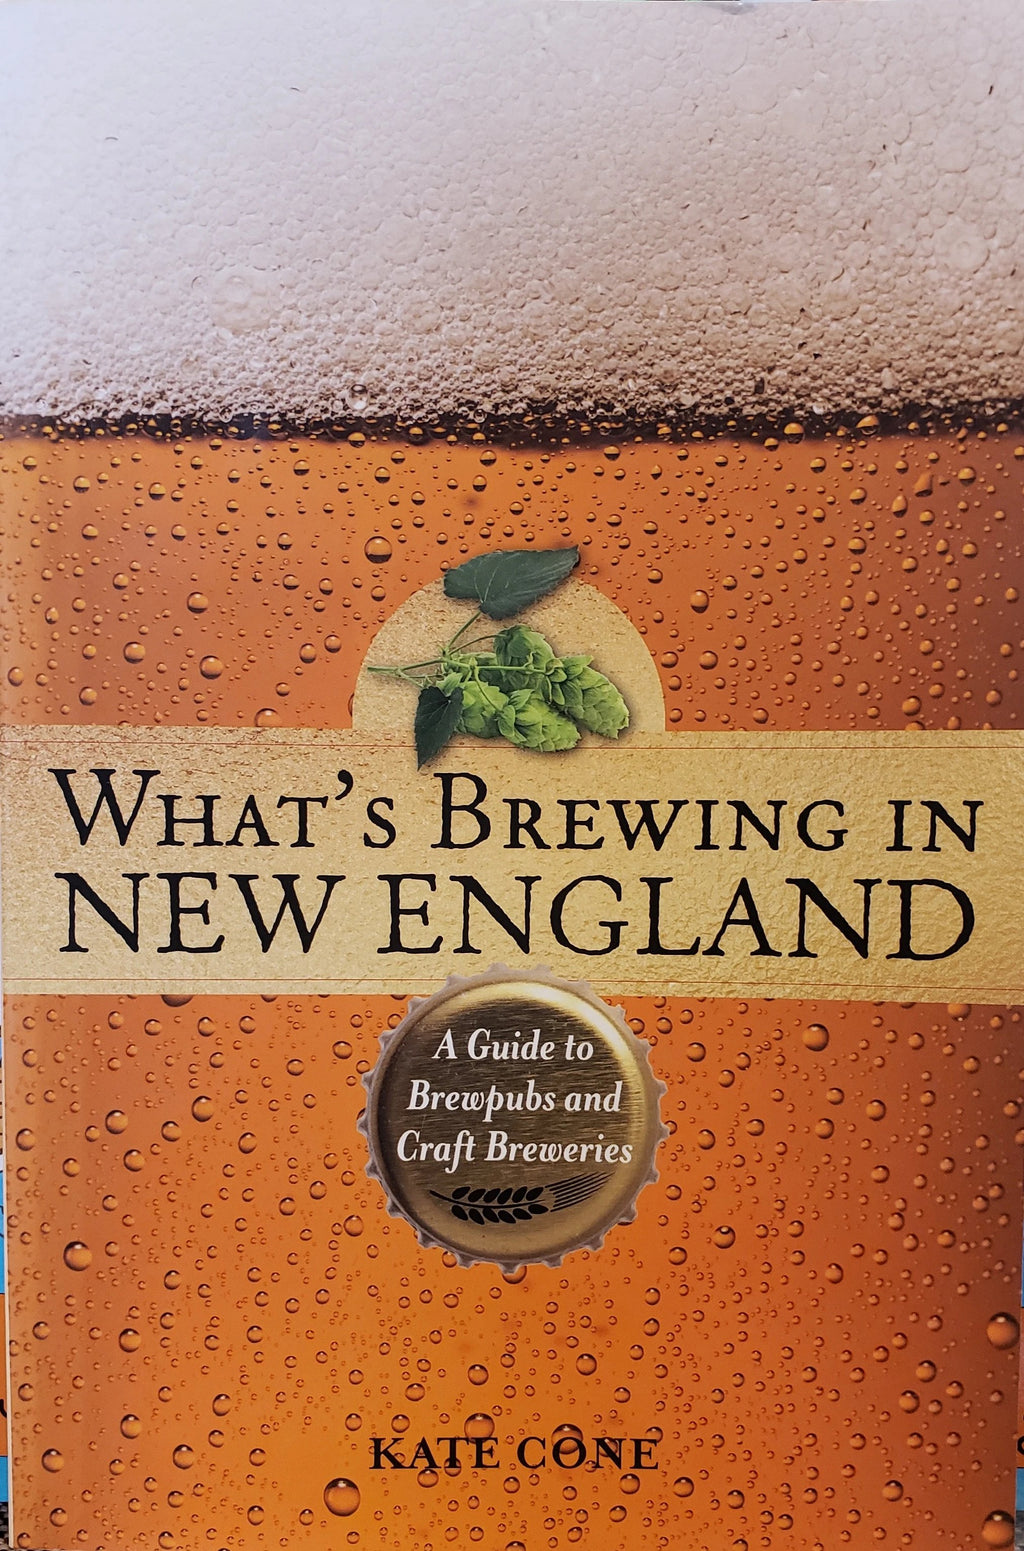 What's Brewing in New England by Kate Cone